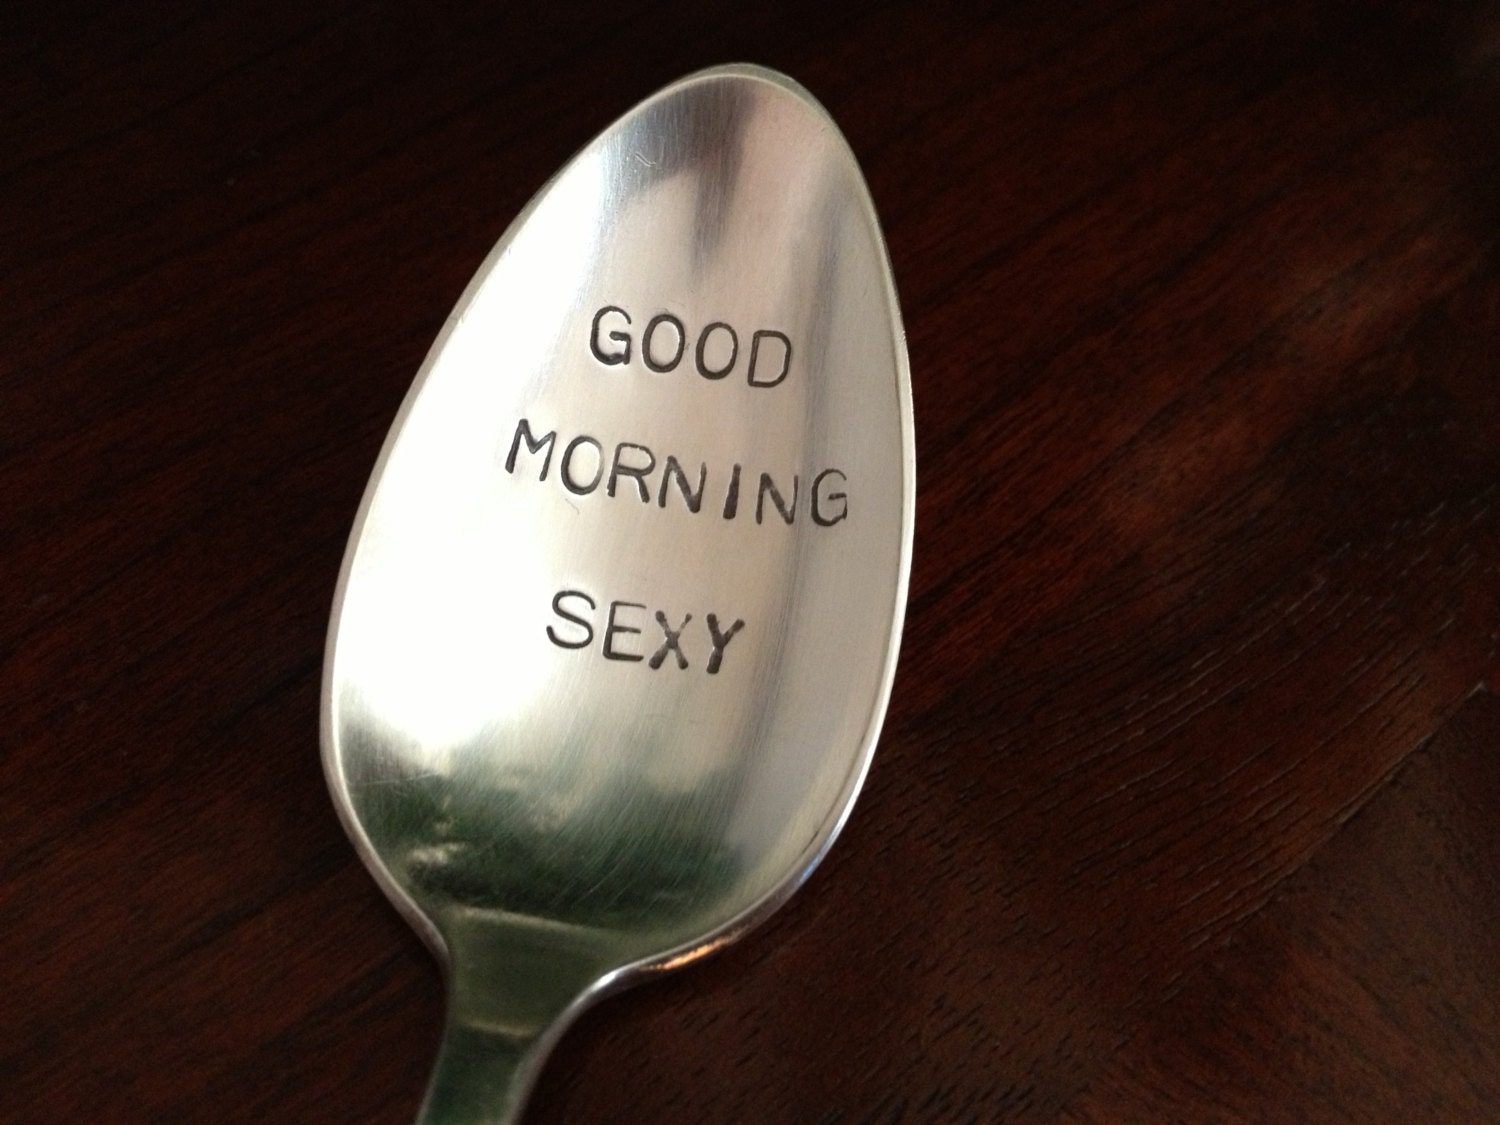 Good Morning Vintage Quotes : Good morning sexy vintage silver plate spoon